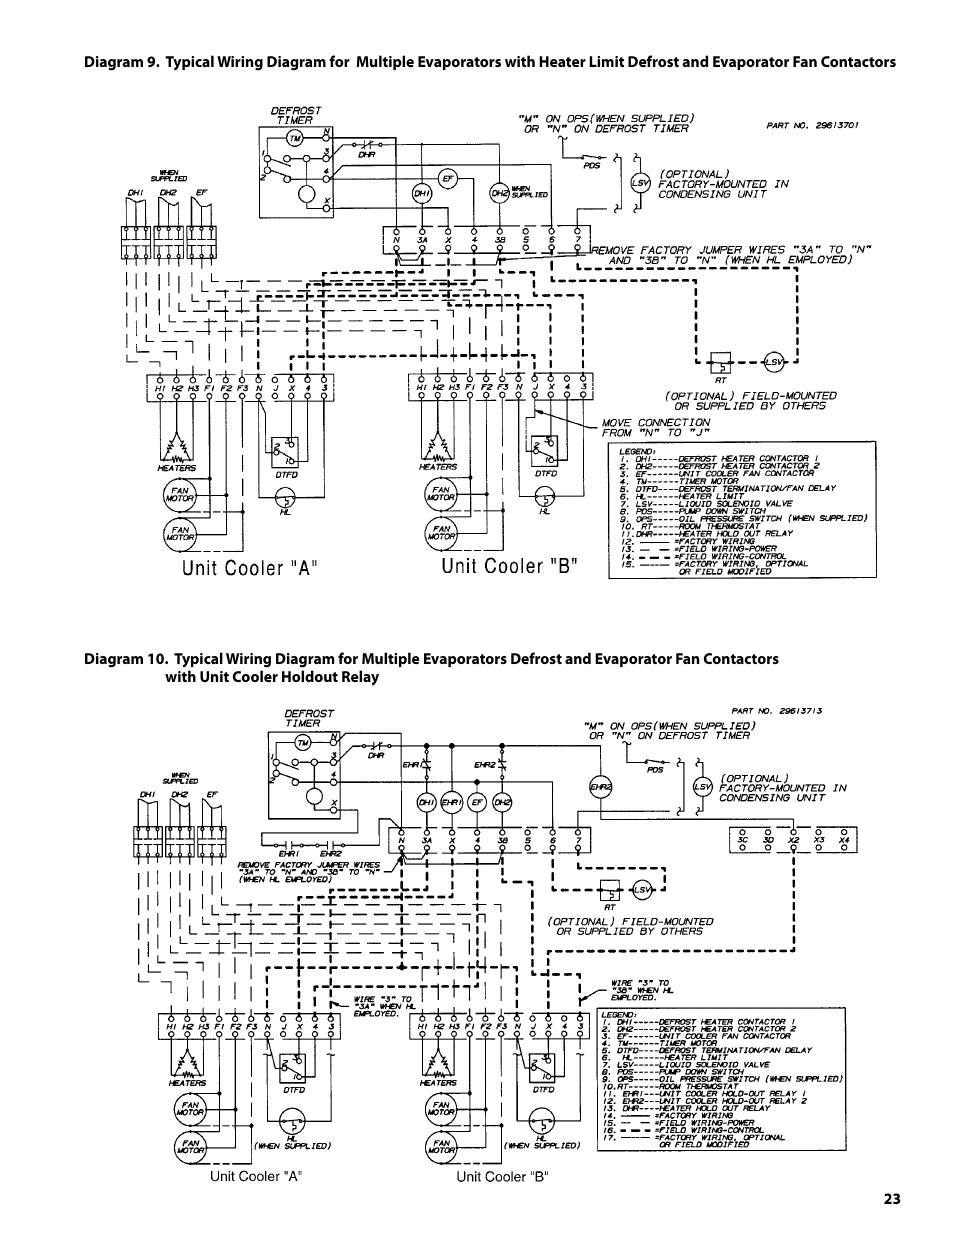 bohn wiring diagrams wiring diagram autovehicle diagrams bohn wiring fezeere wiring diagram usedbohn zer wiring diagrams wiring diagram blog diagrams bohn wiring